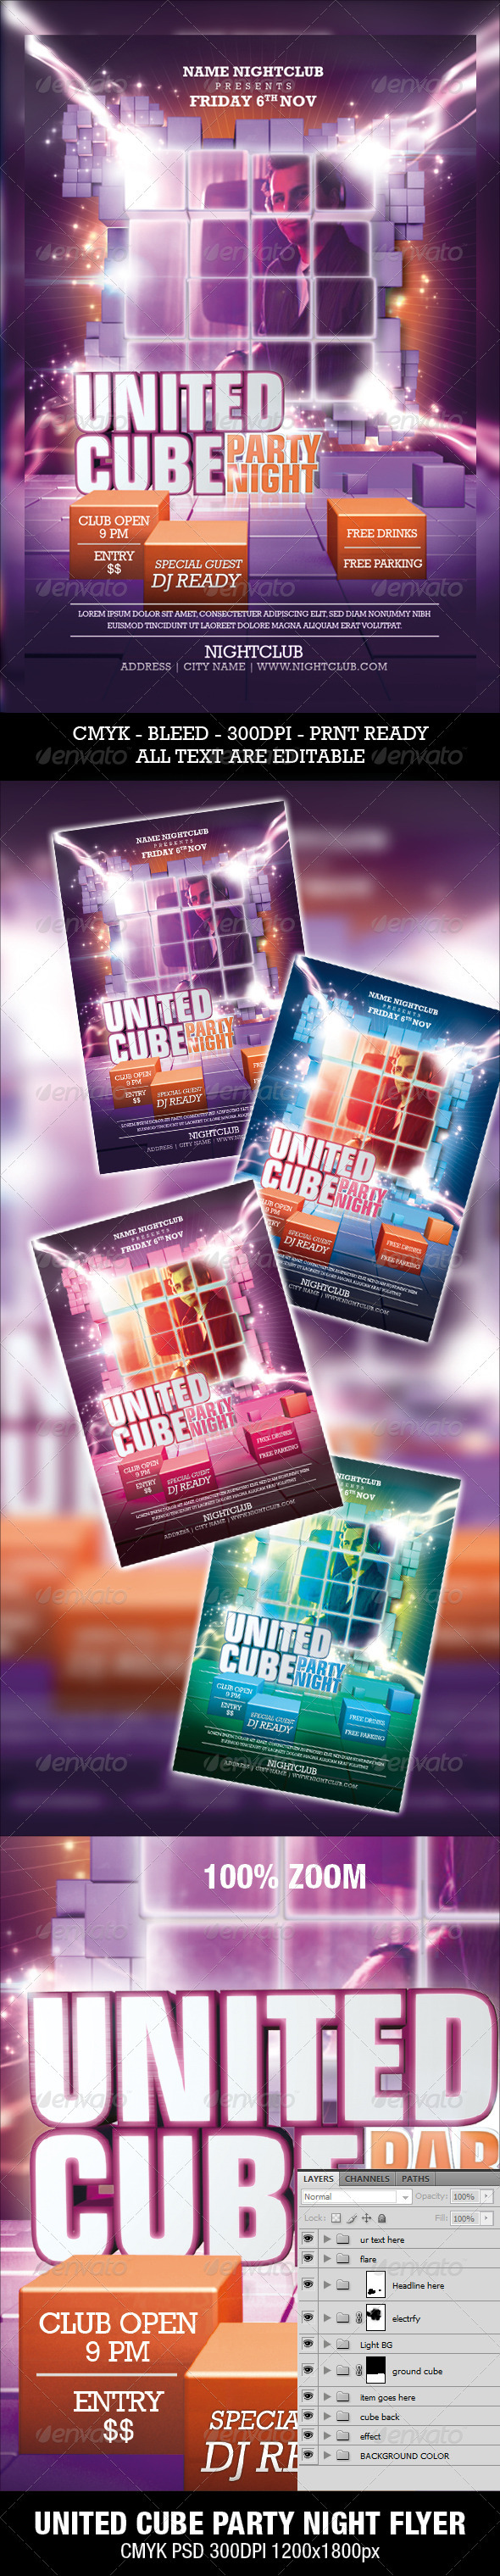 United Cube Party Night Flyer